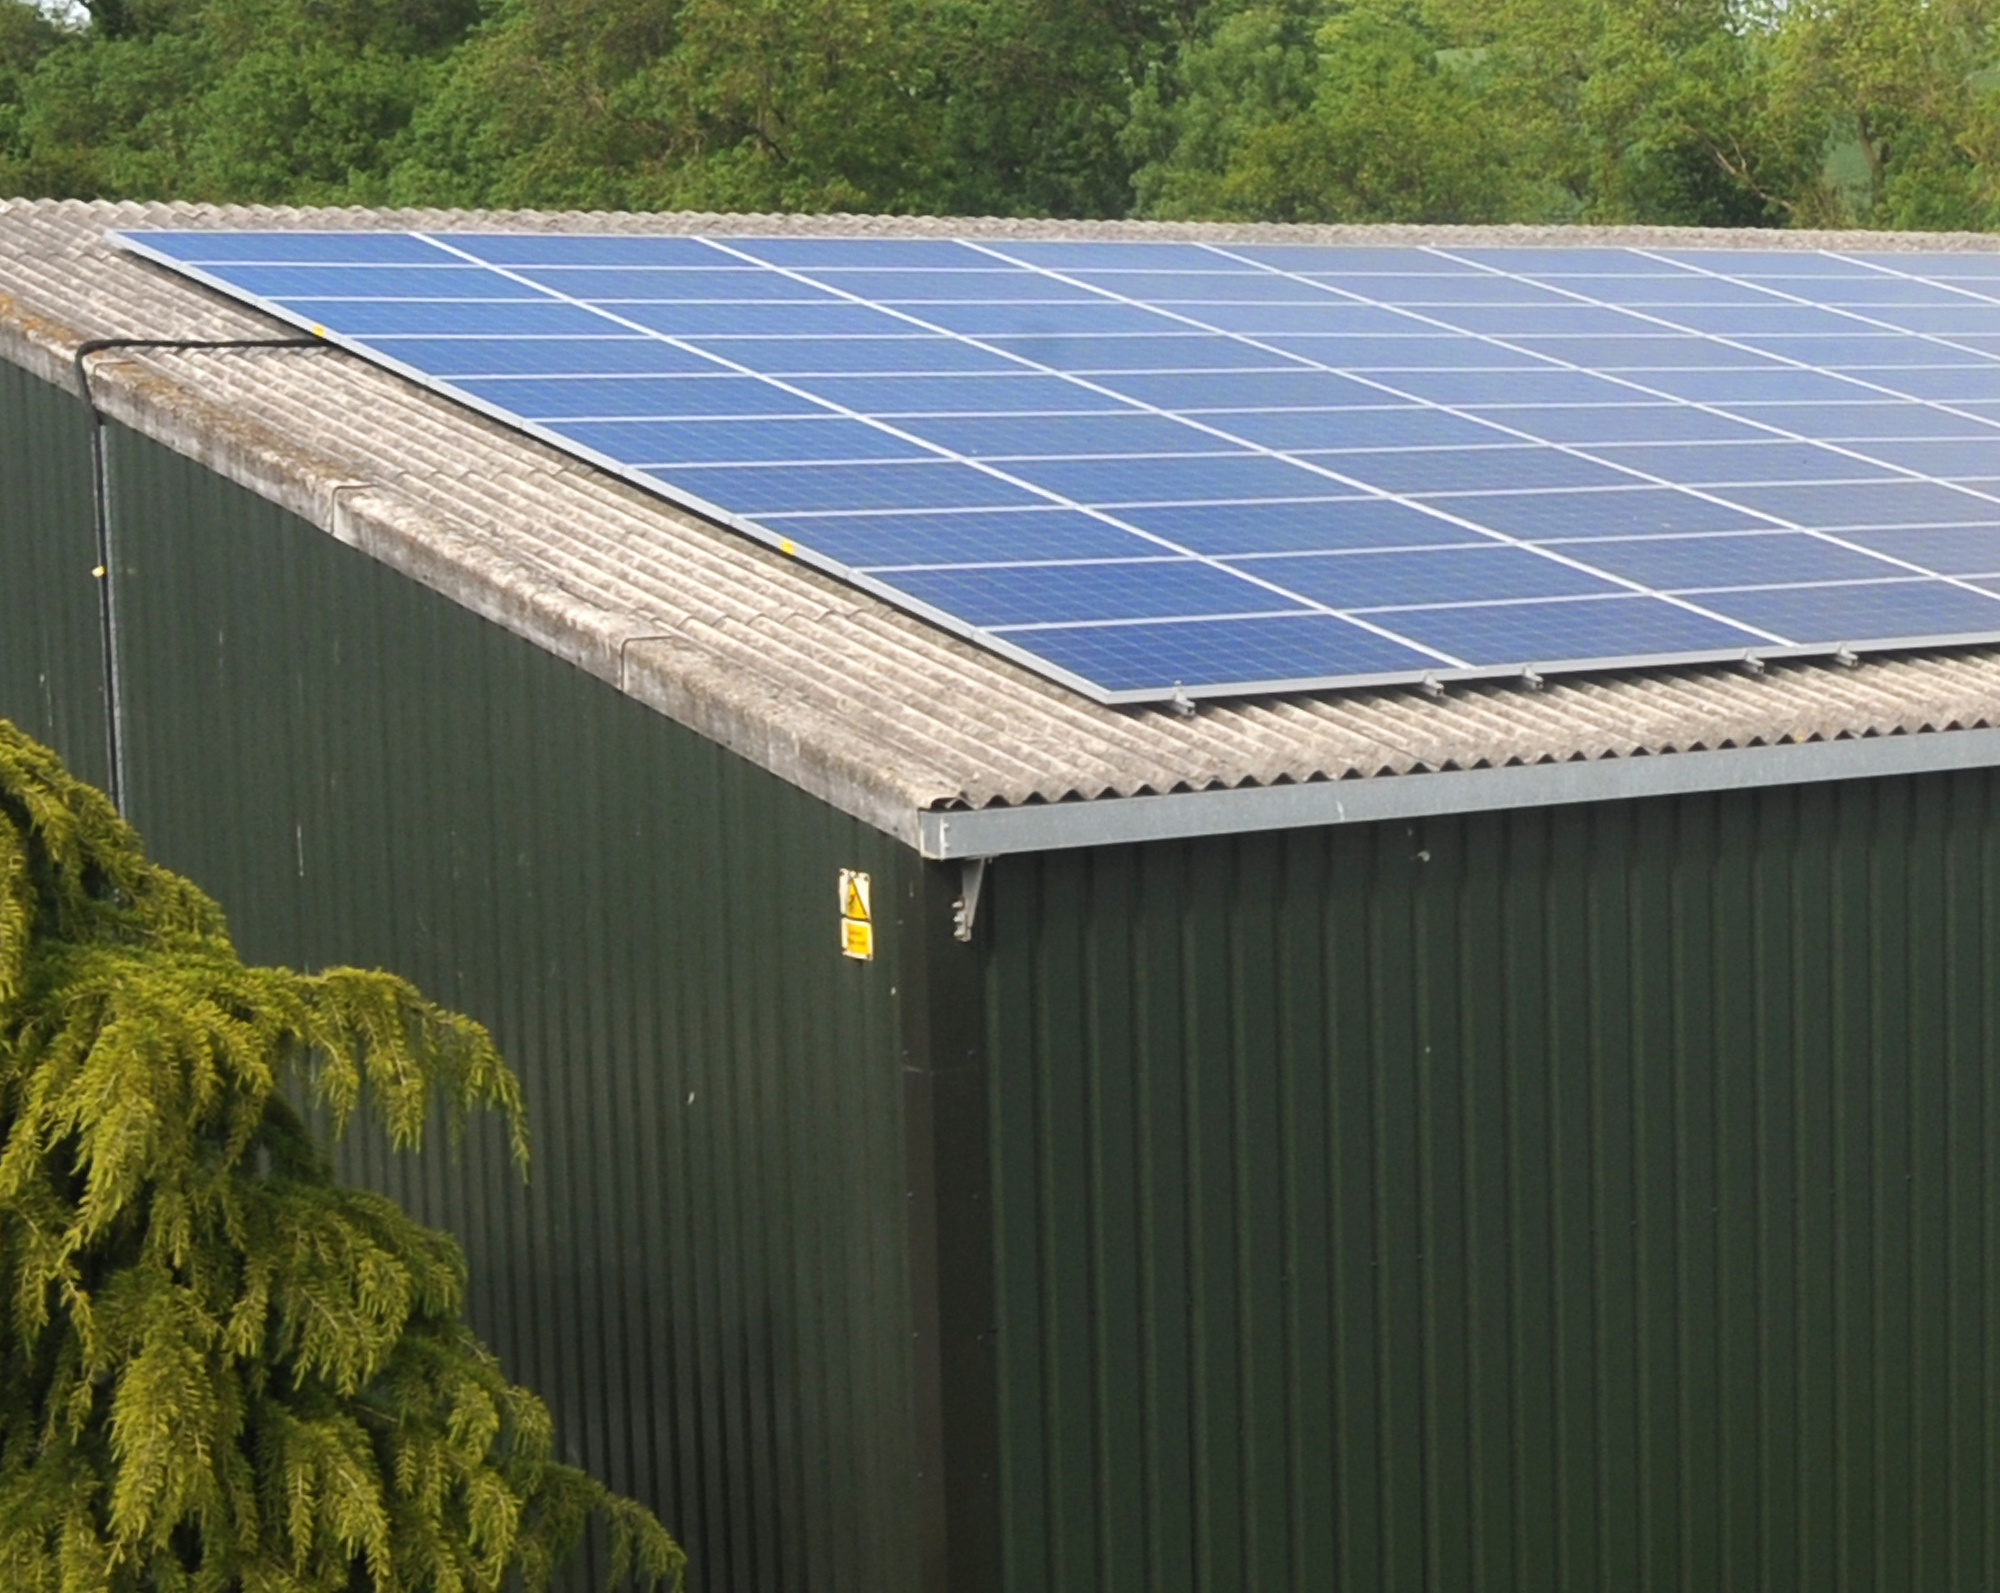 Solar panels in operation at the Sherwood Storage facility, Nottingham